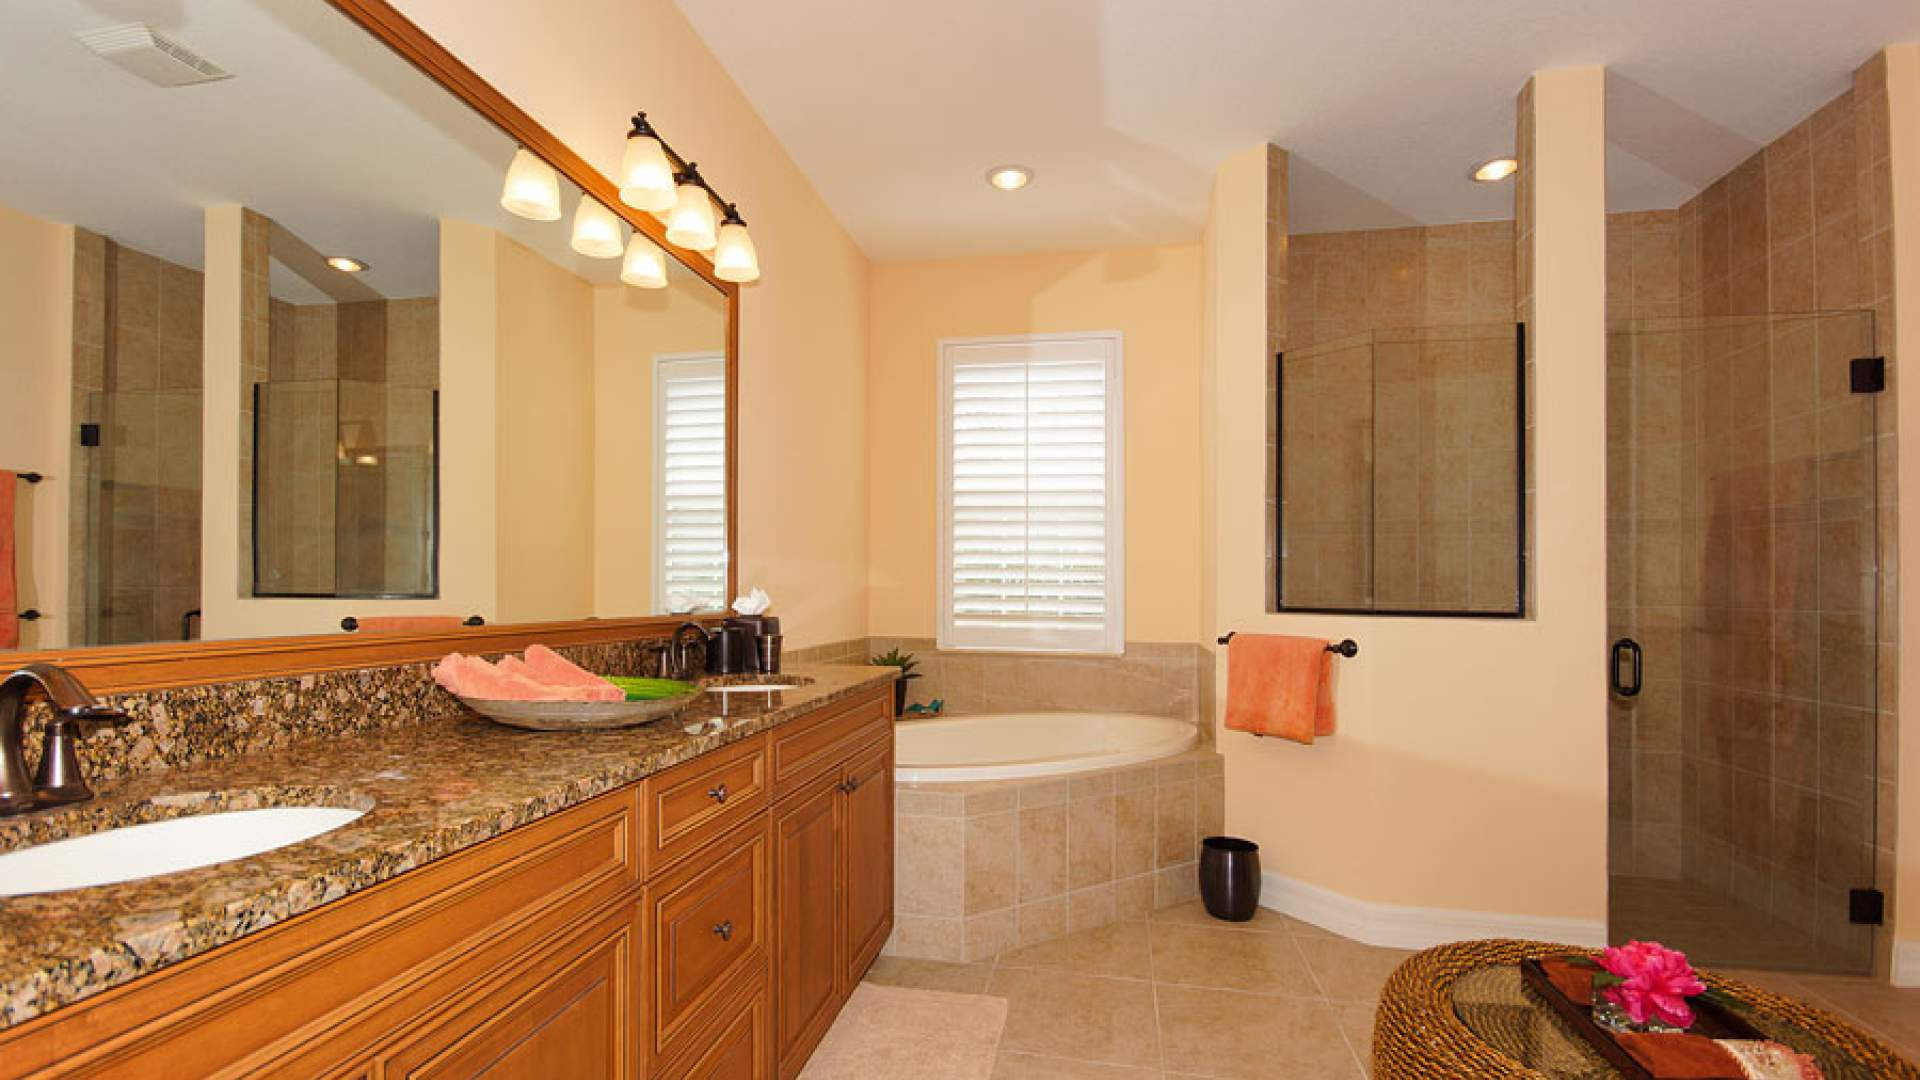 Double sink, tub and walk-in shower are offered in the master bath